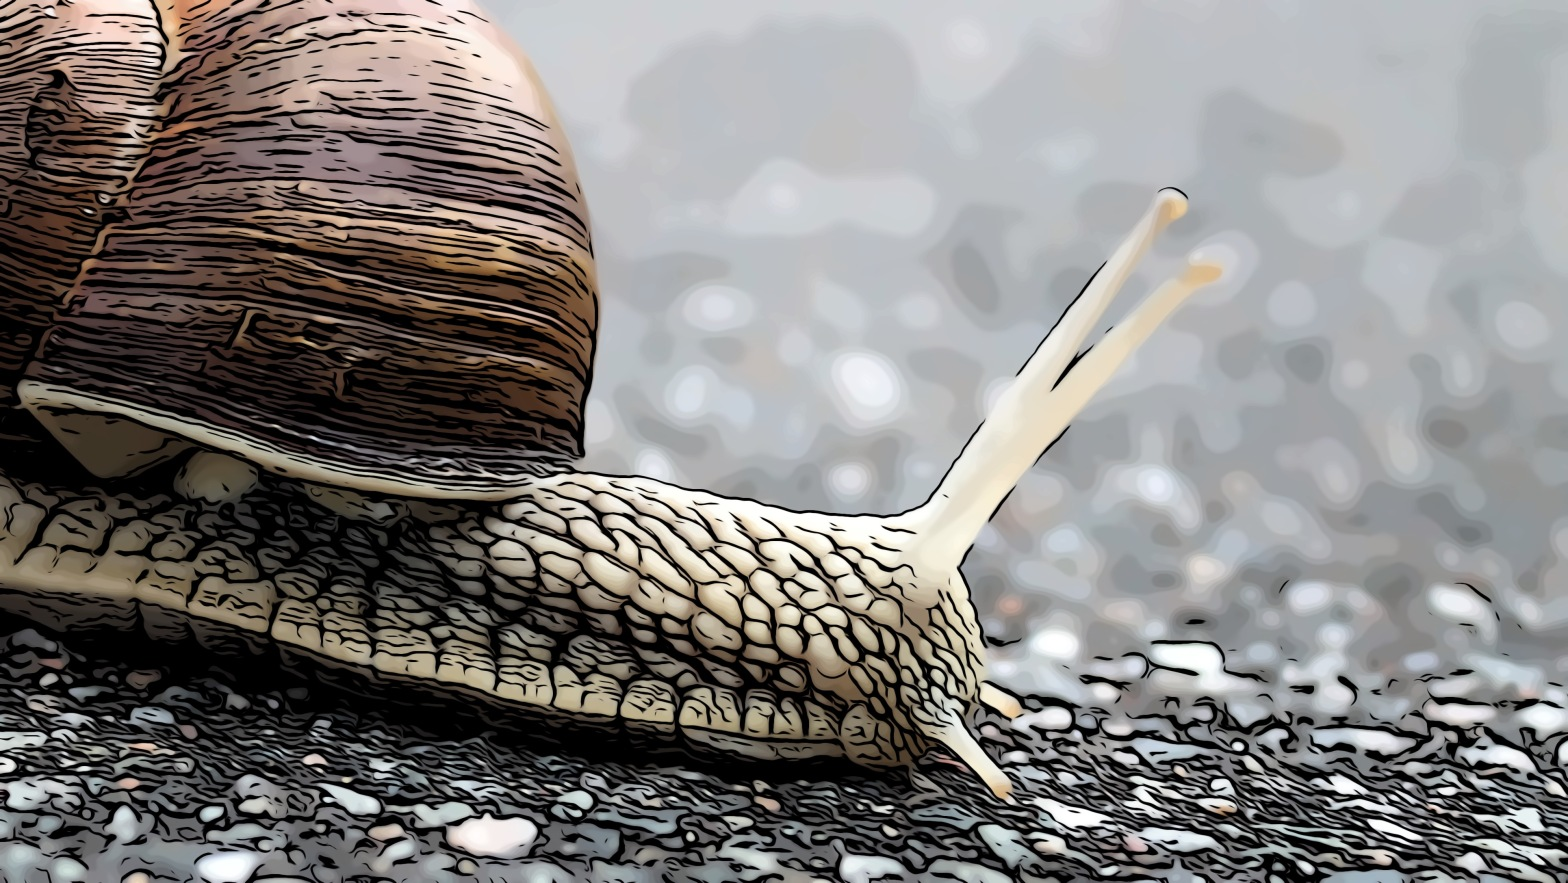 Snail header comic